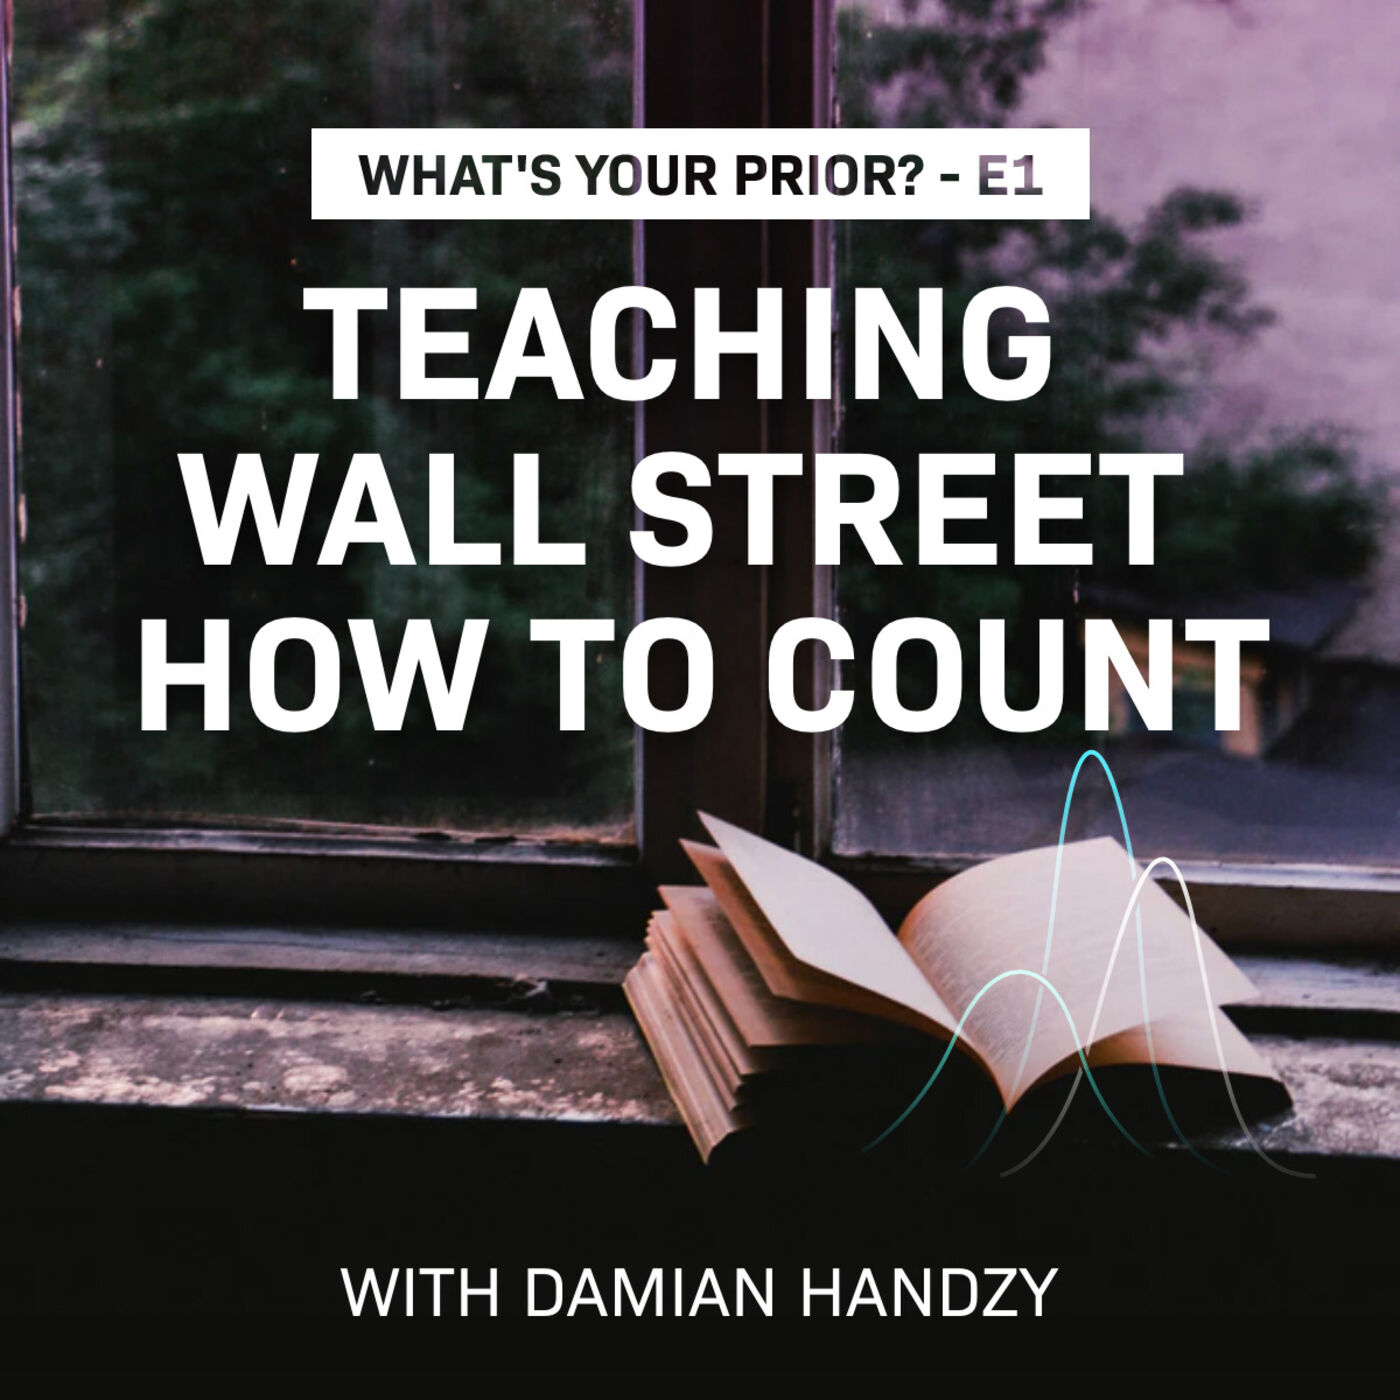 The Preacher from 1700's England who Taught Wall Street how to Count